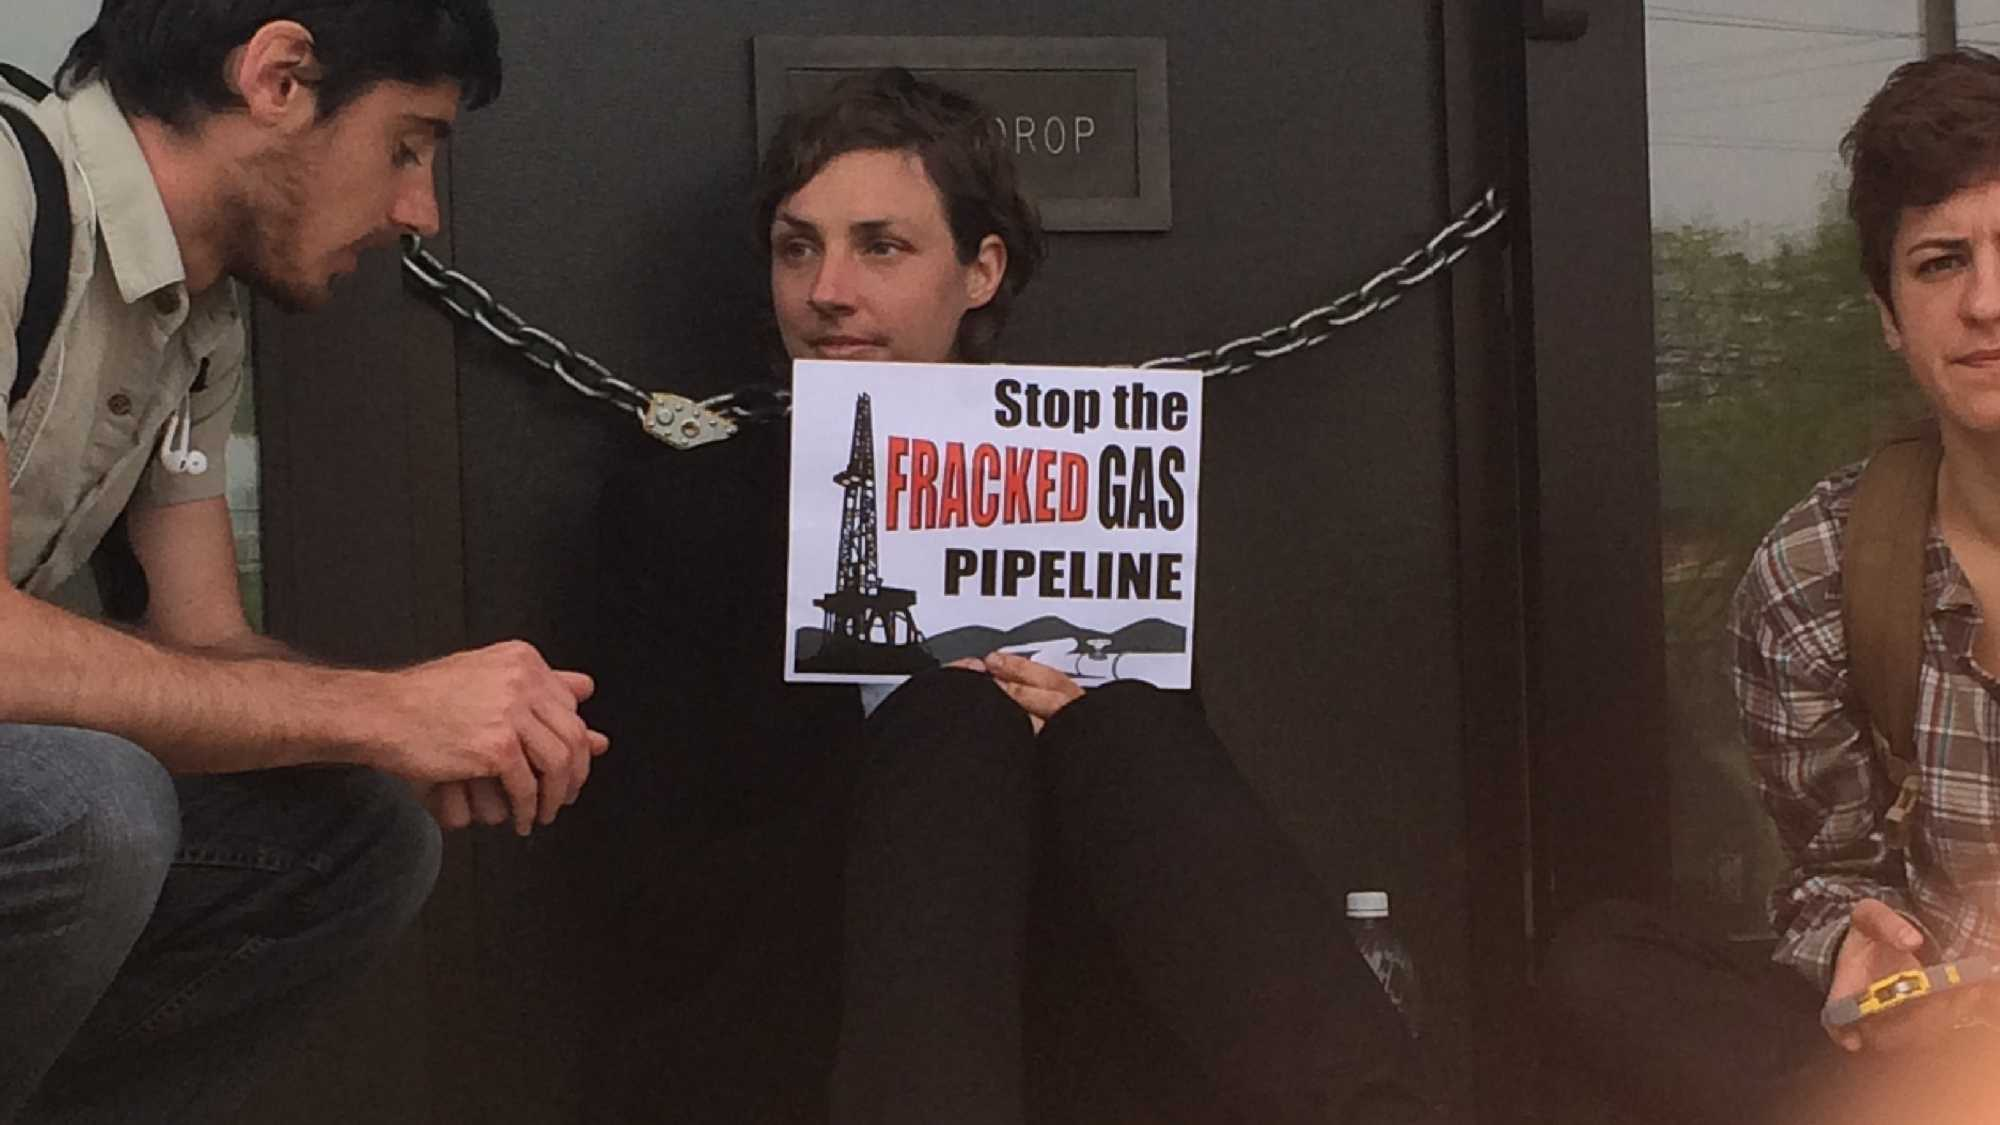 Sara Mehalick, of Plainfield, Vermont, chained herself to the main entrance of the Vermont Gas building in protest of the company's pipeline plan.